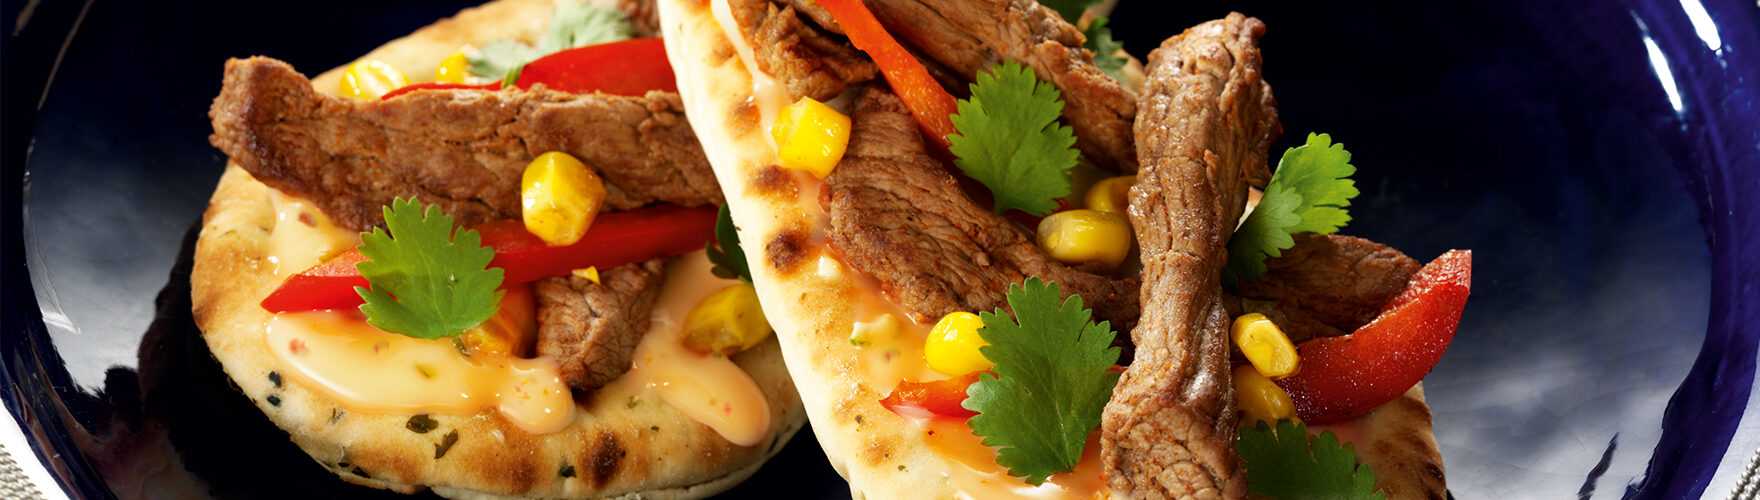 Naan sandwich with sliced beef, sweet corn and peppers